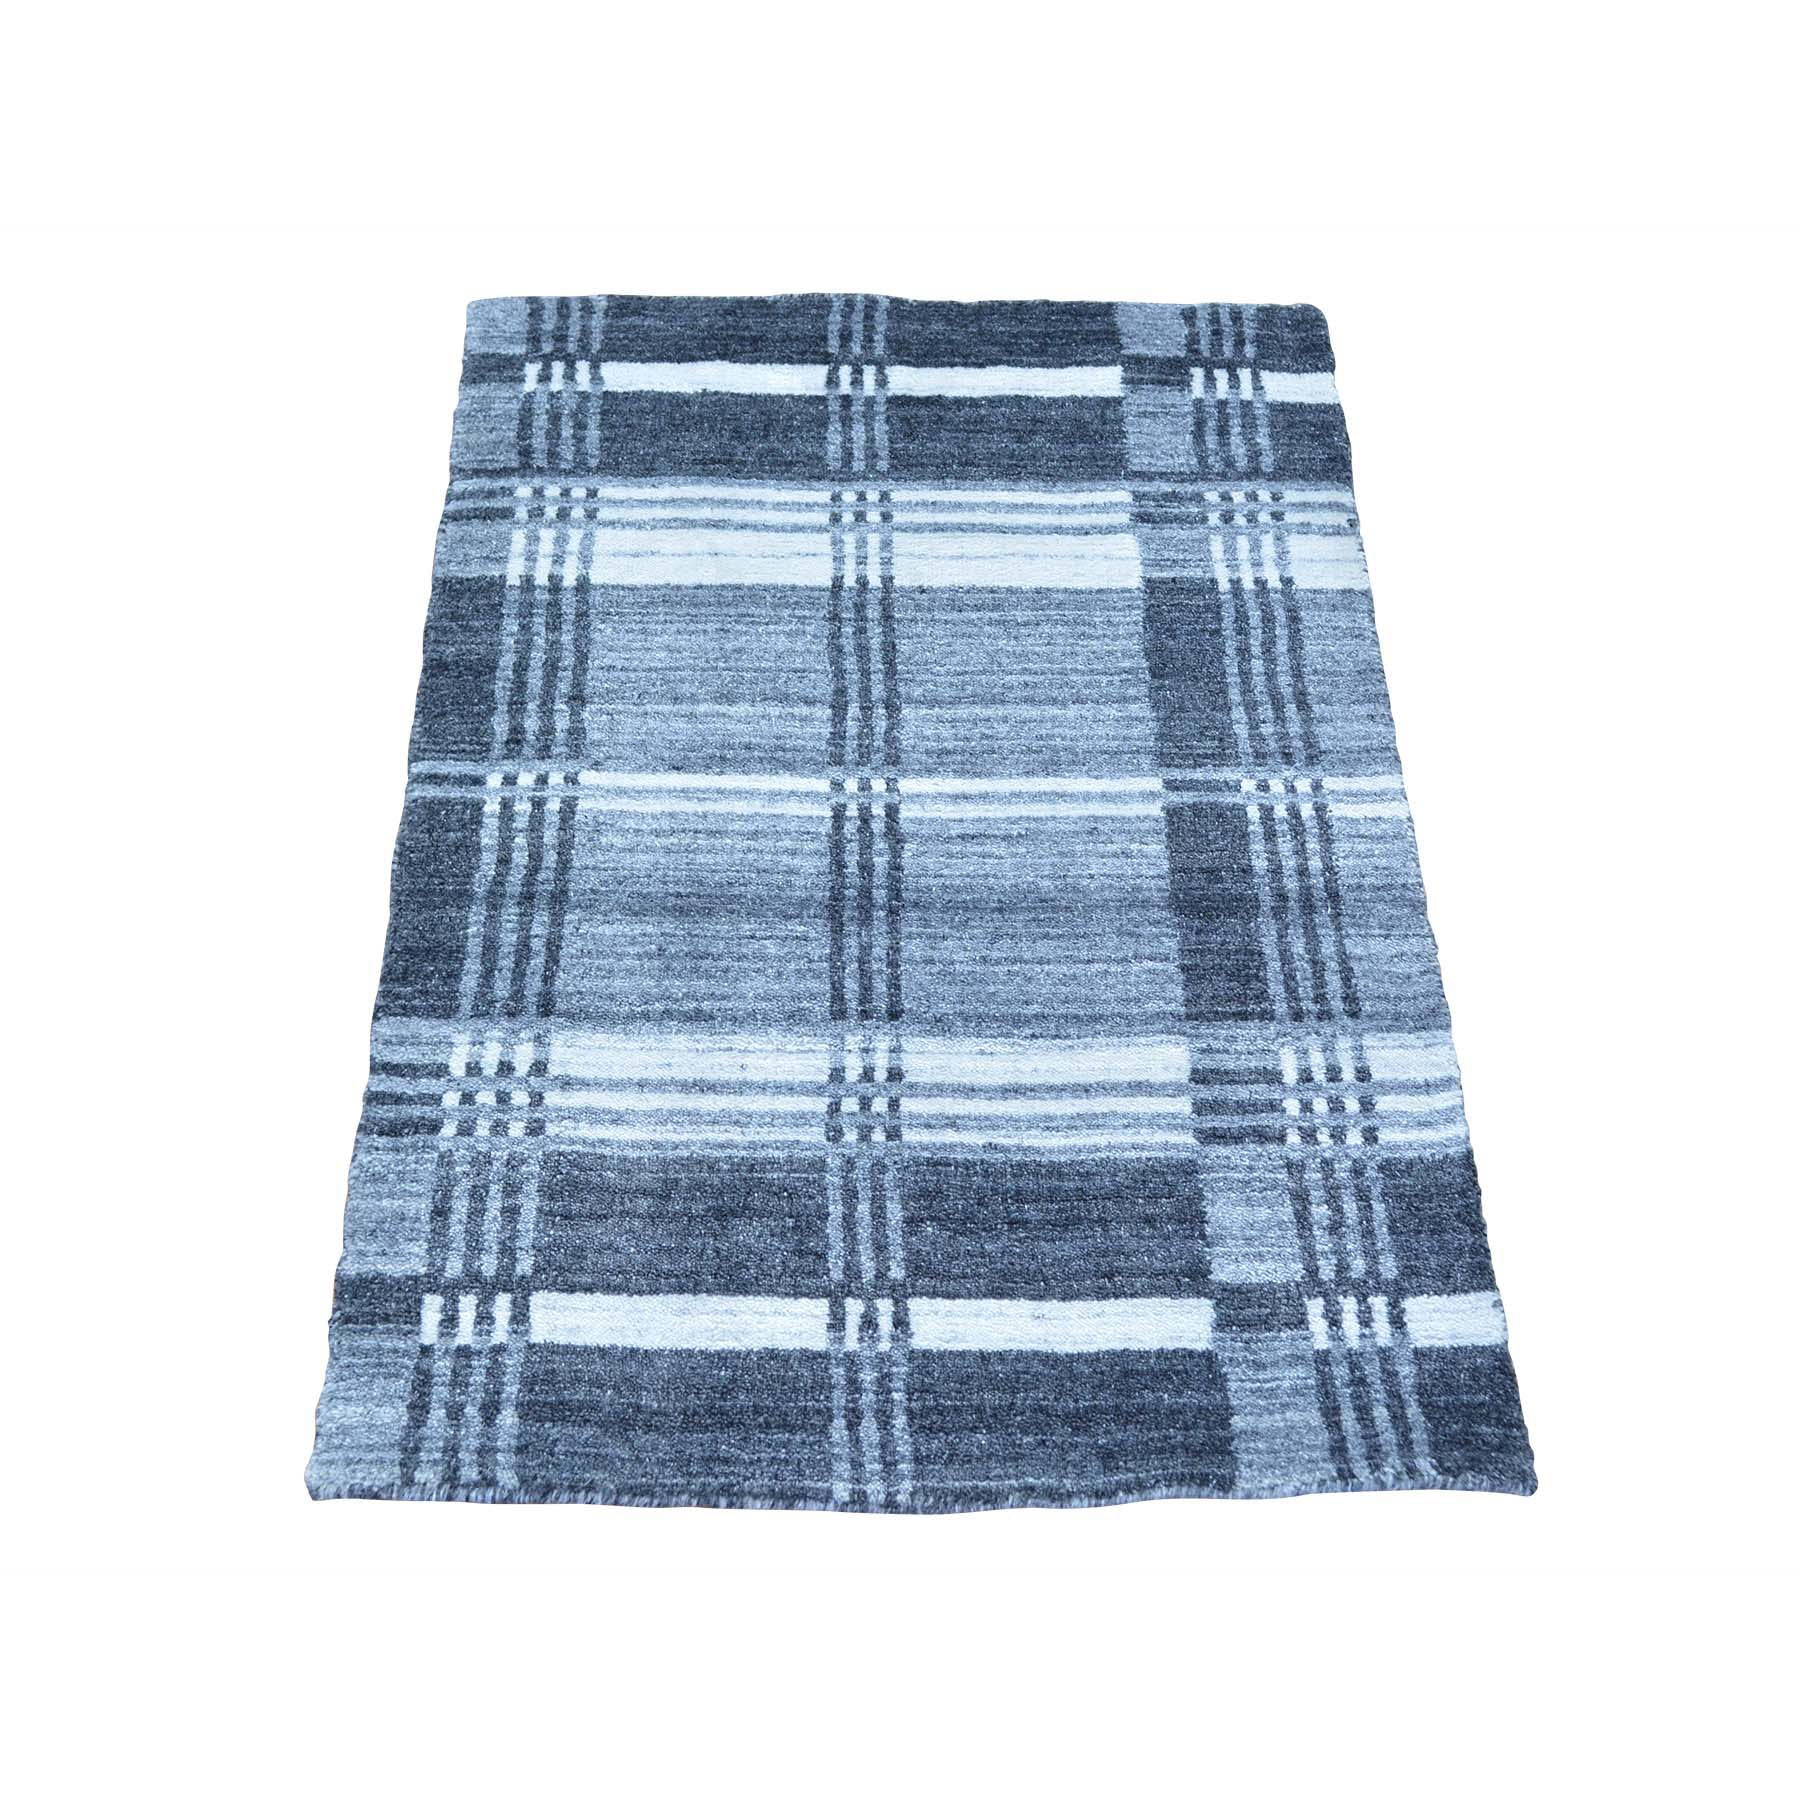 "Handmade Modern and Contemporary Rectangle Rug > Design# SH23235 > Size: 2'-0"" x 3'-0"" [ONLINE ONLY]"